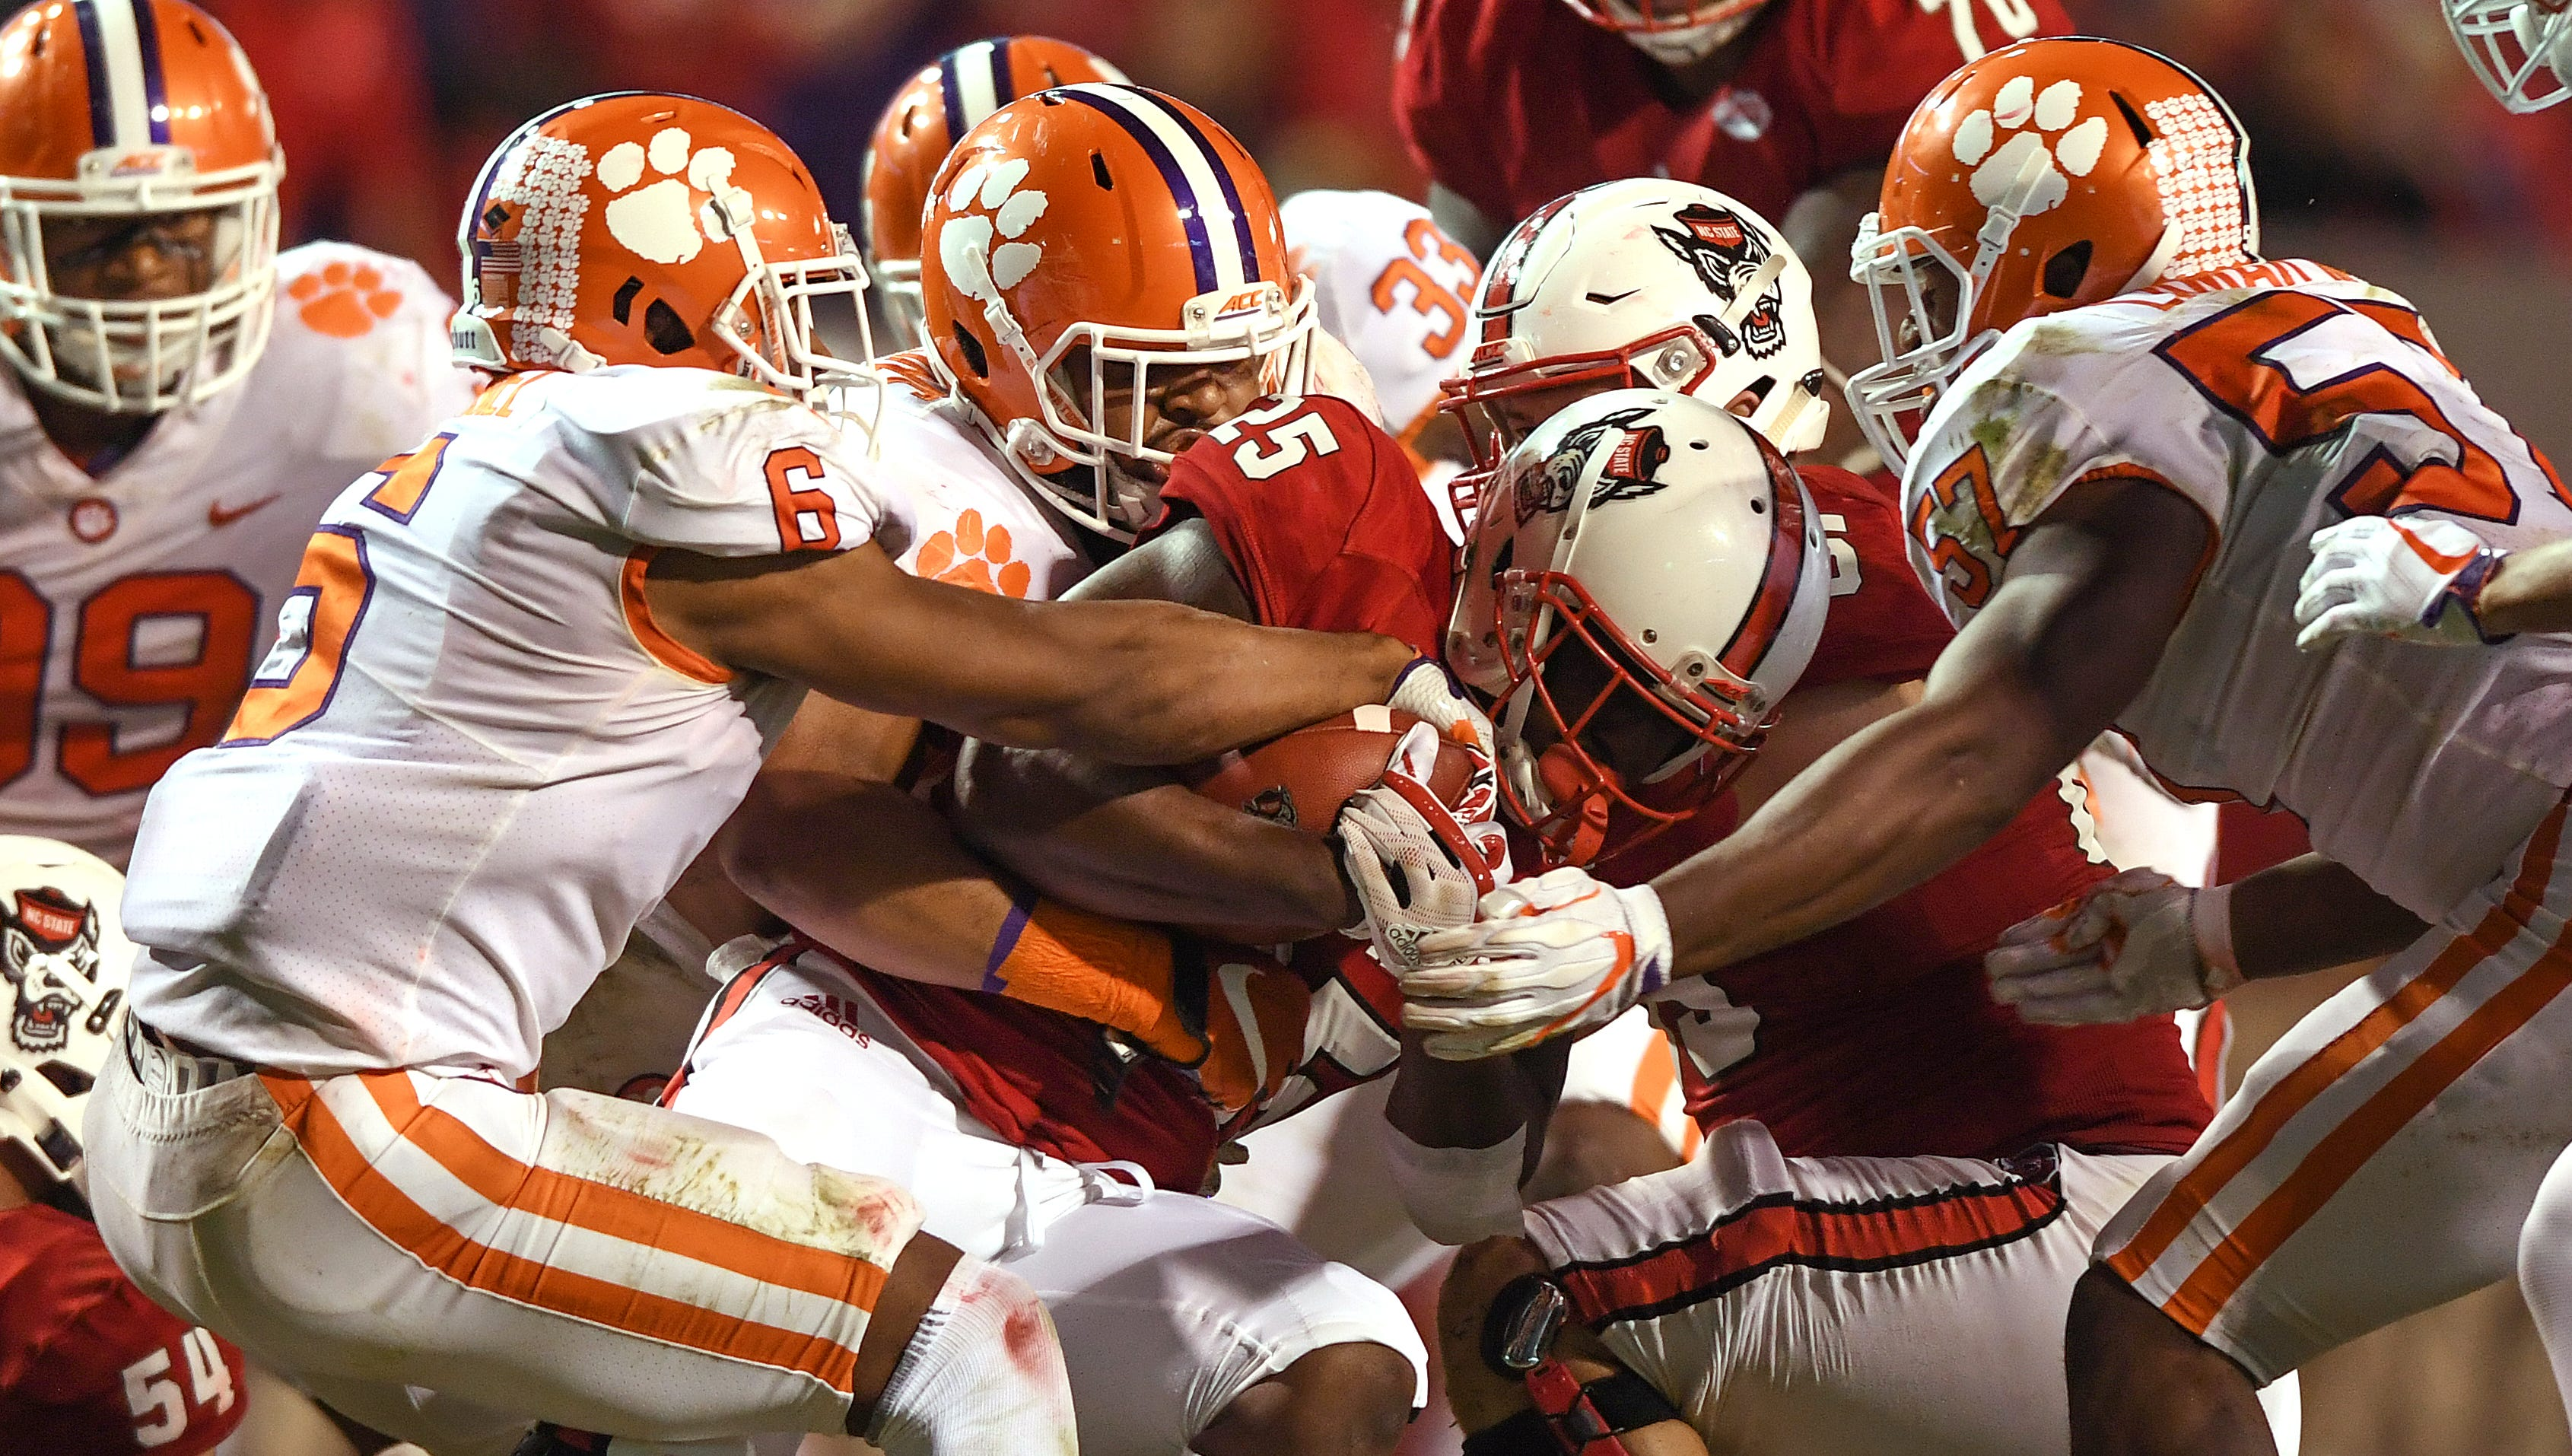 NC State running back Reggie Gallaspy II (25) is stopped by Clemson's defense during the 4th quarter on Saturday, November 4, 2017 at N.C. State's Carter Finley Stadium in Raleigh, N.C.